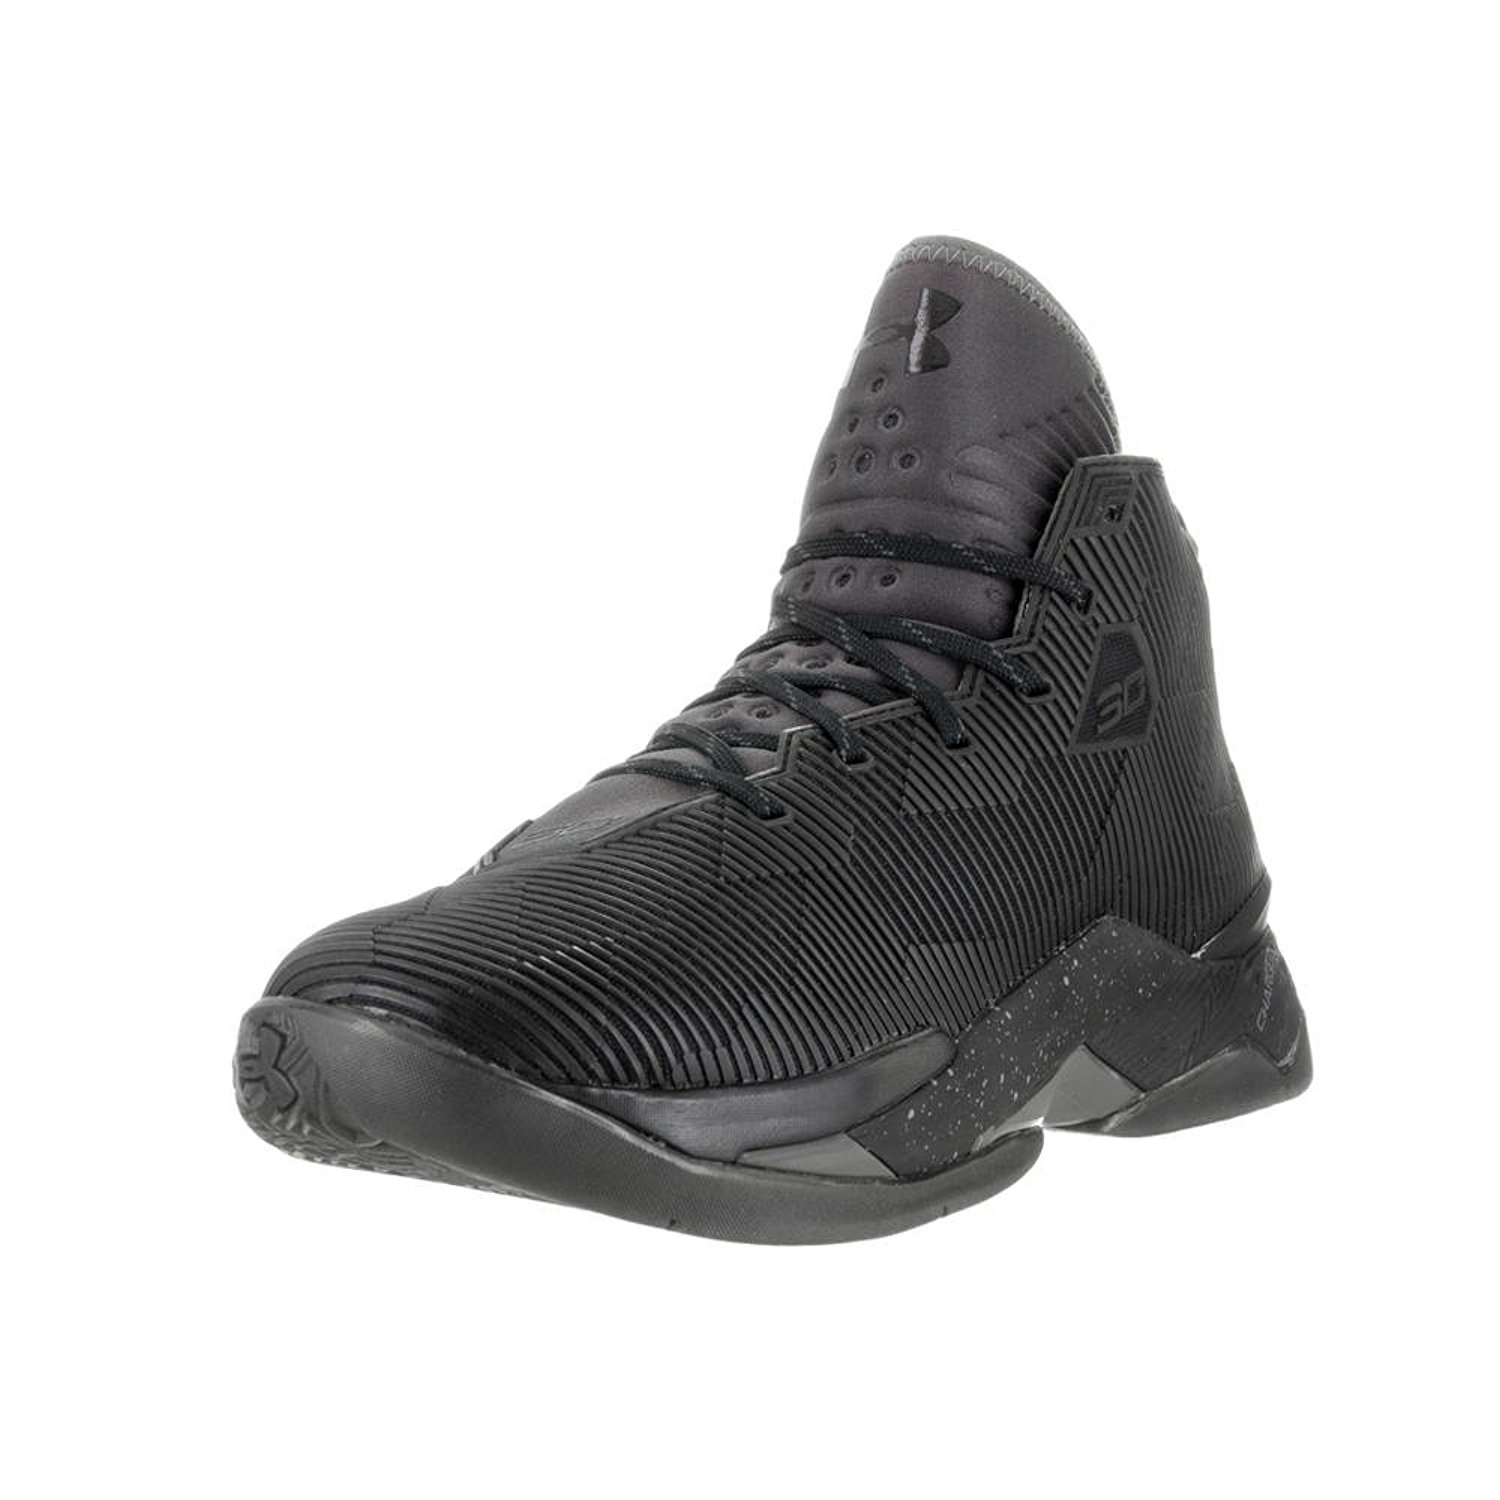 628bc49d0fea Get Quotations · Under Armour UA Curry 25 mens basketball-shoes  1274425-006 7 - Black